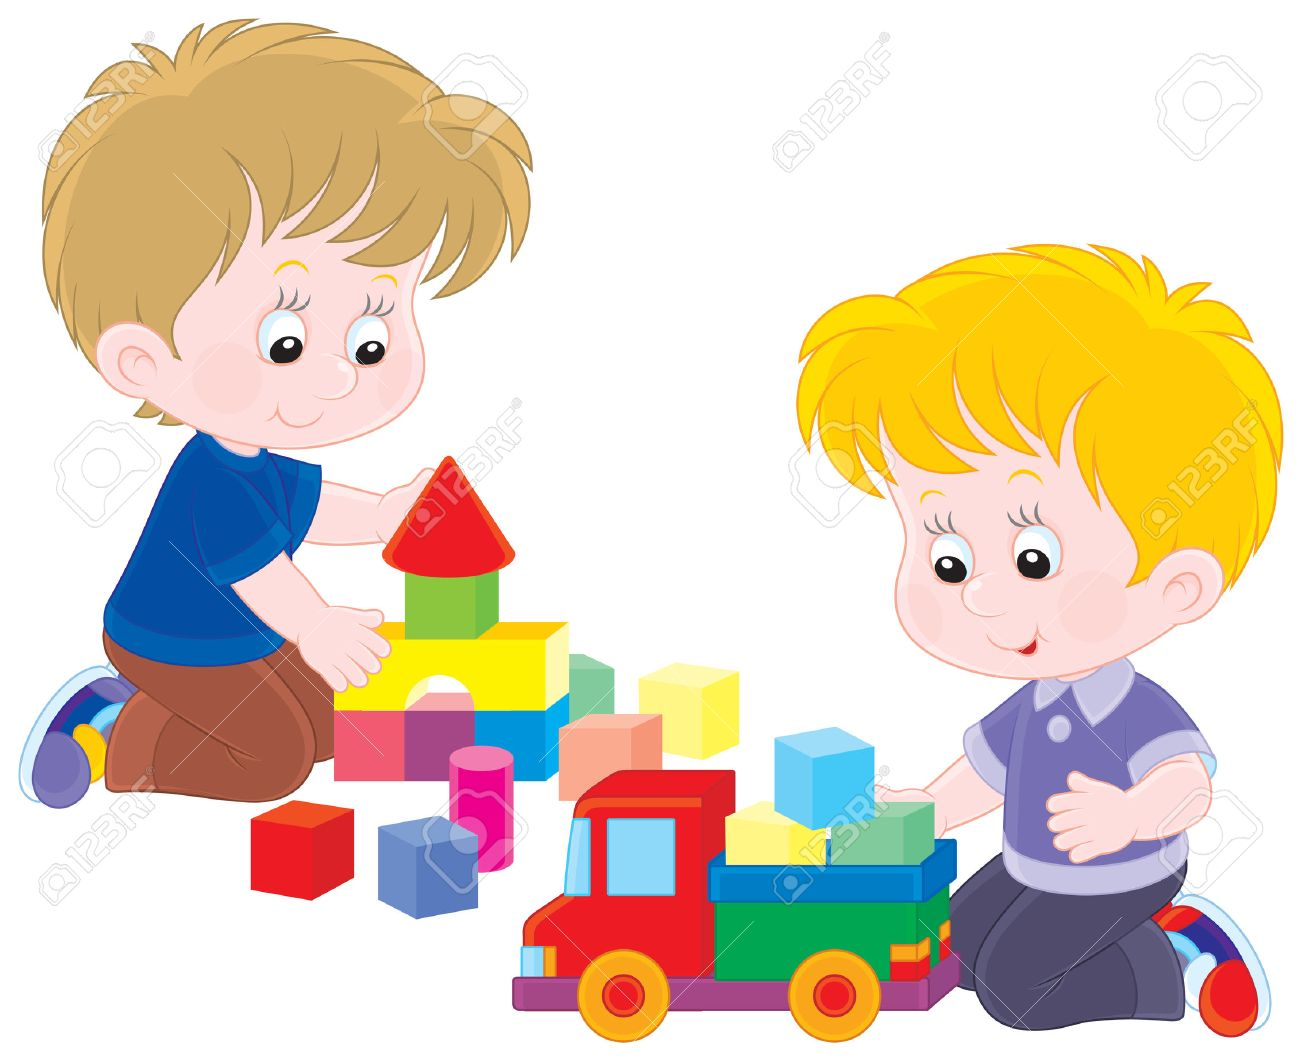 Kids playing with toys clipart 2 » Clipart Station.